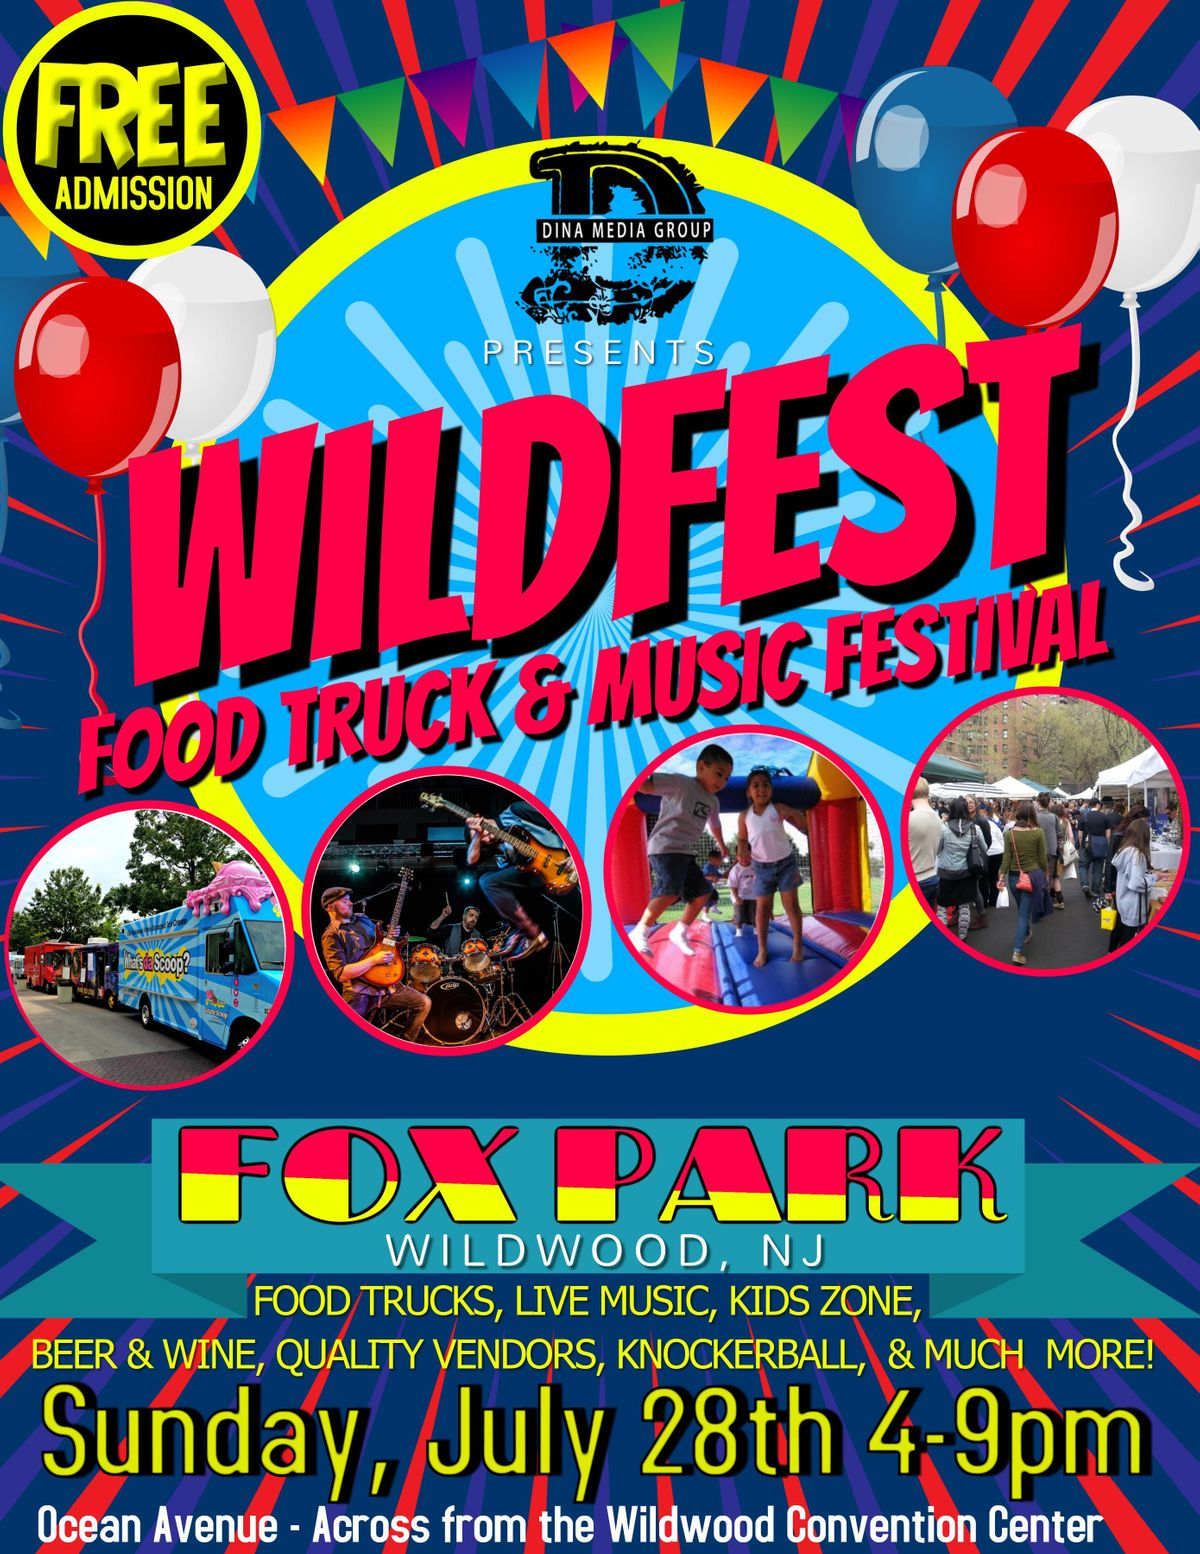 WILDFEST FOOD TRUCK AND MUSIC FESTIVAL at Fox Park, WILDWOOD